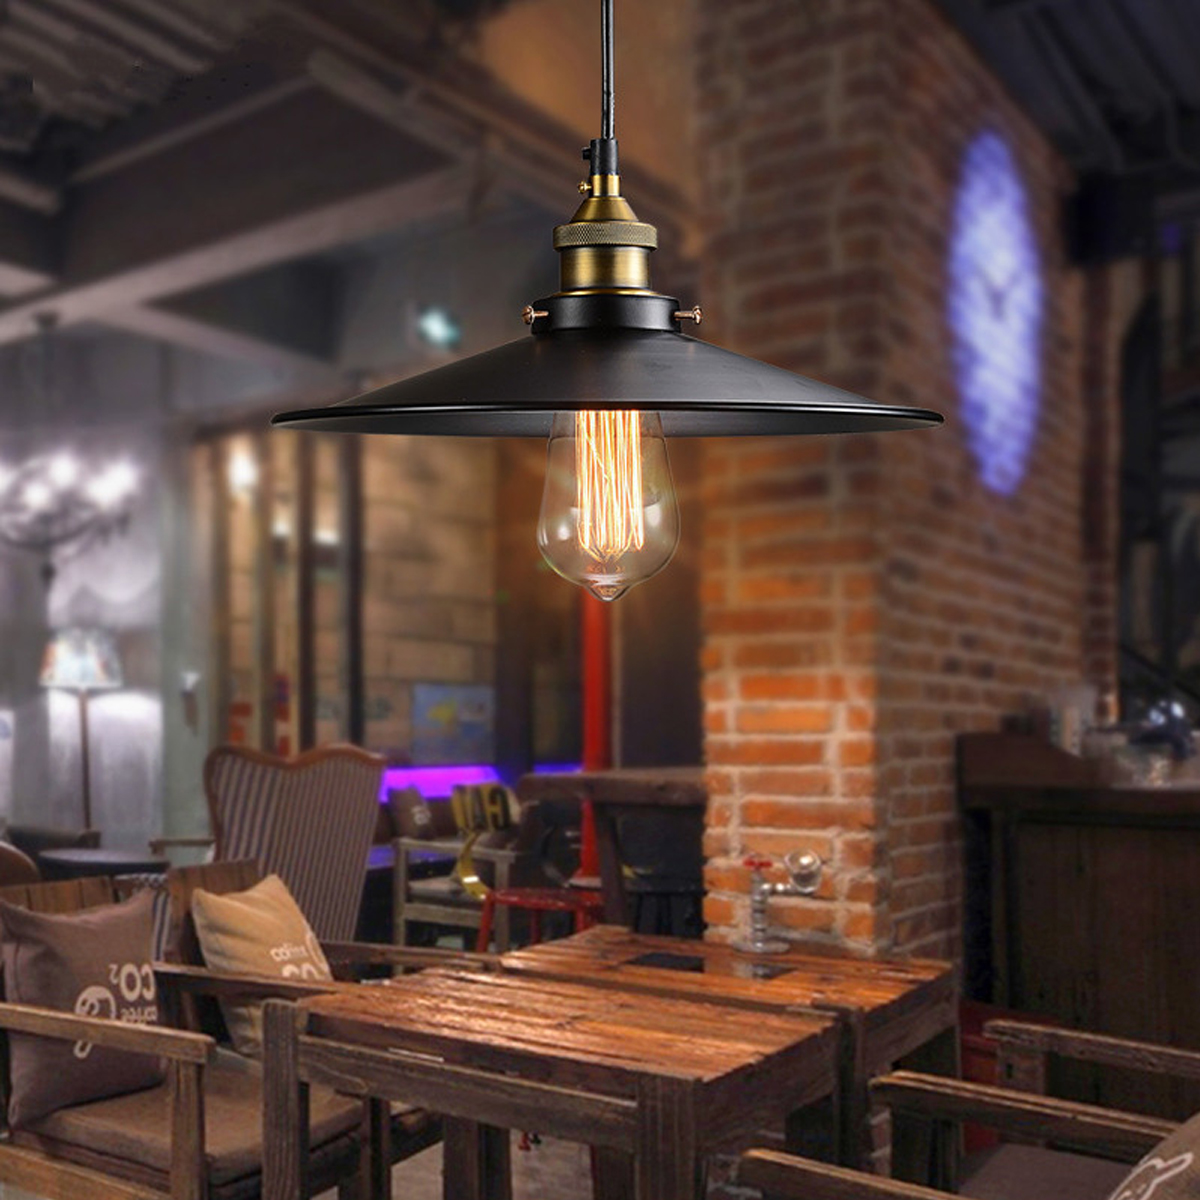 Loft Vintage Ceiling Lamp Retro Industrial Chandelier Fixture For Cafe Restaurant Bar American Style Metal Light european vintage loft industrial chandelier bar lamp retro light vintage industrial style lighting decoration